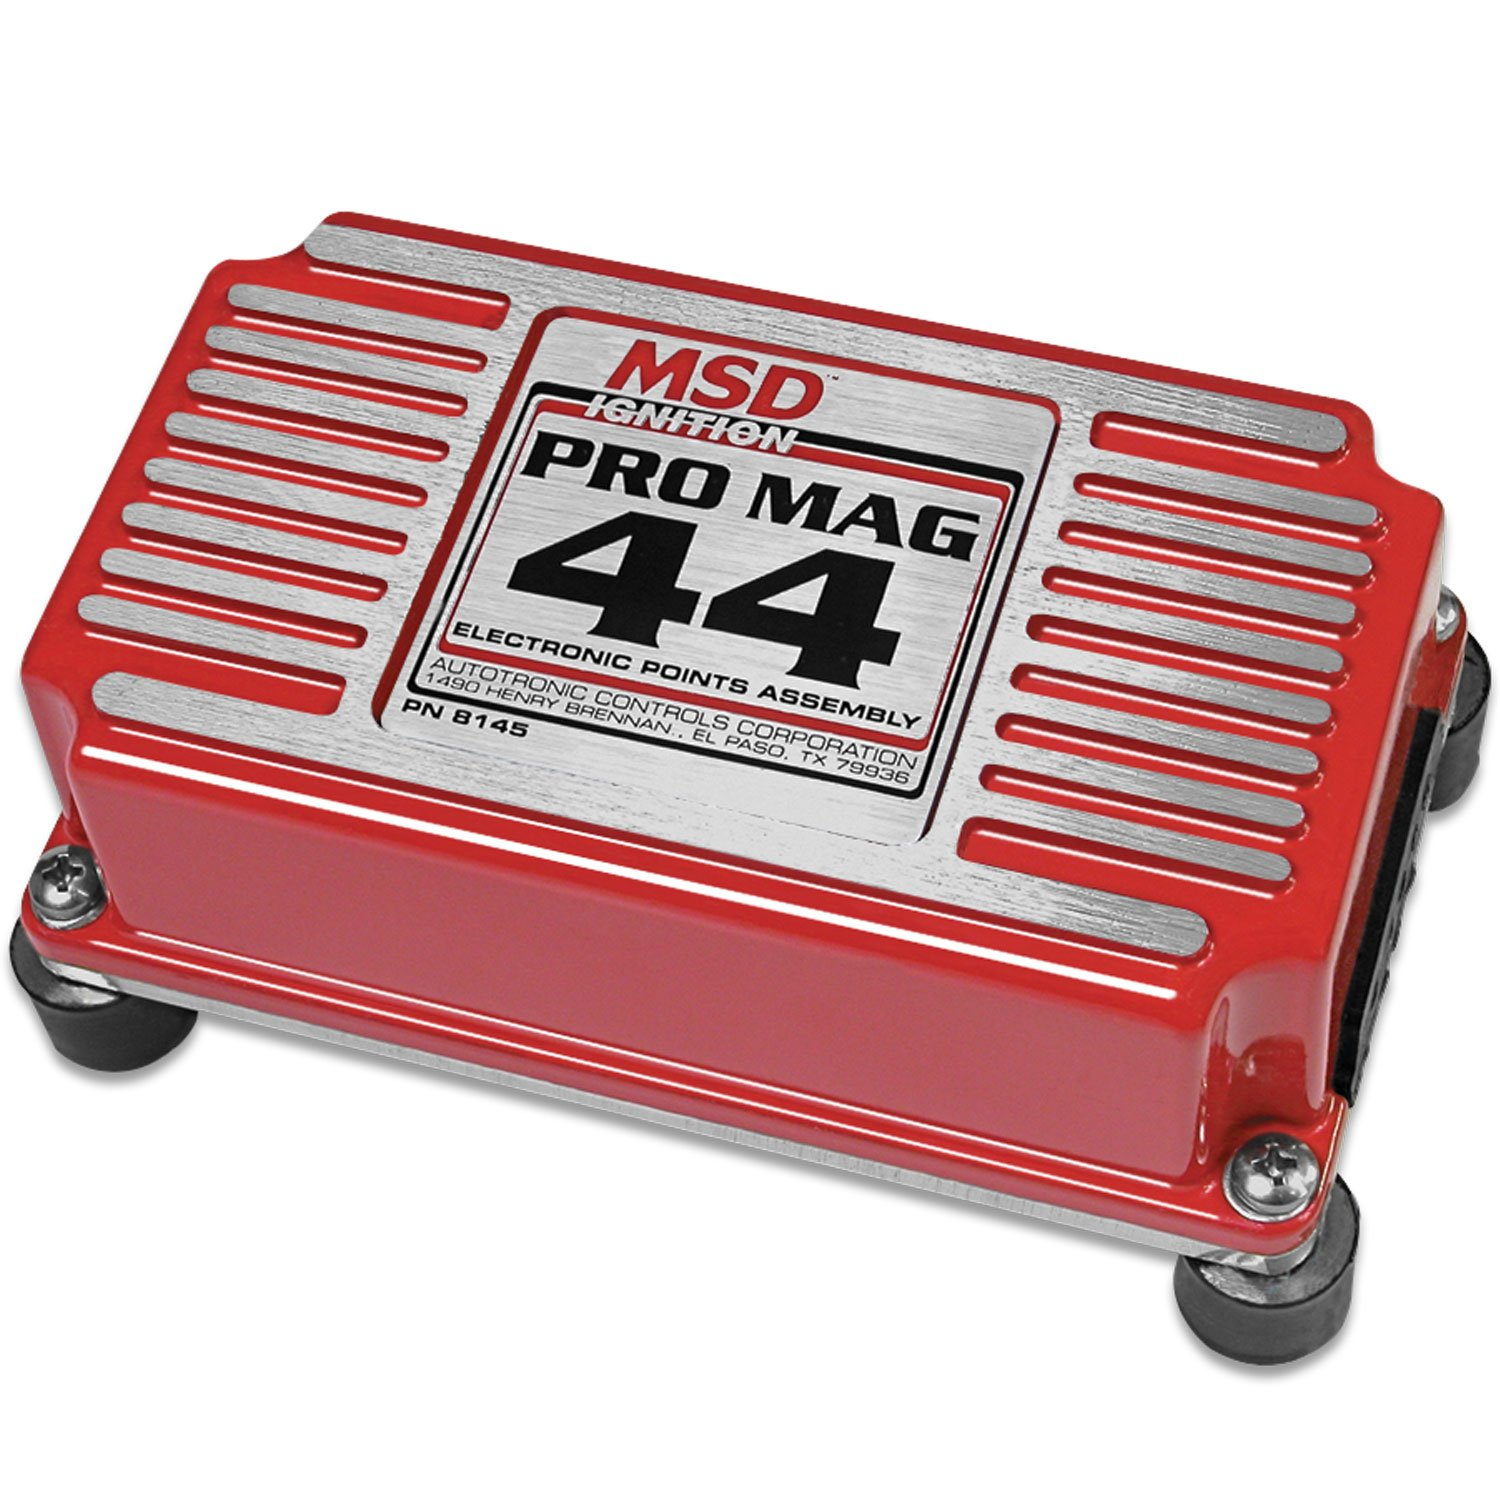 8145MSD - Pro Mag 44 Amp Electronic Points Box, Red Image